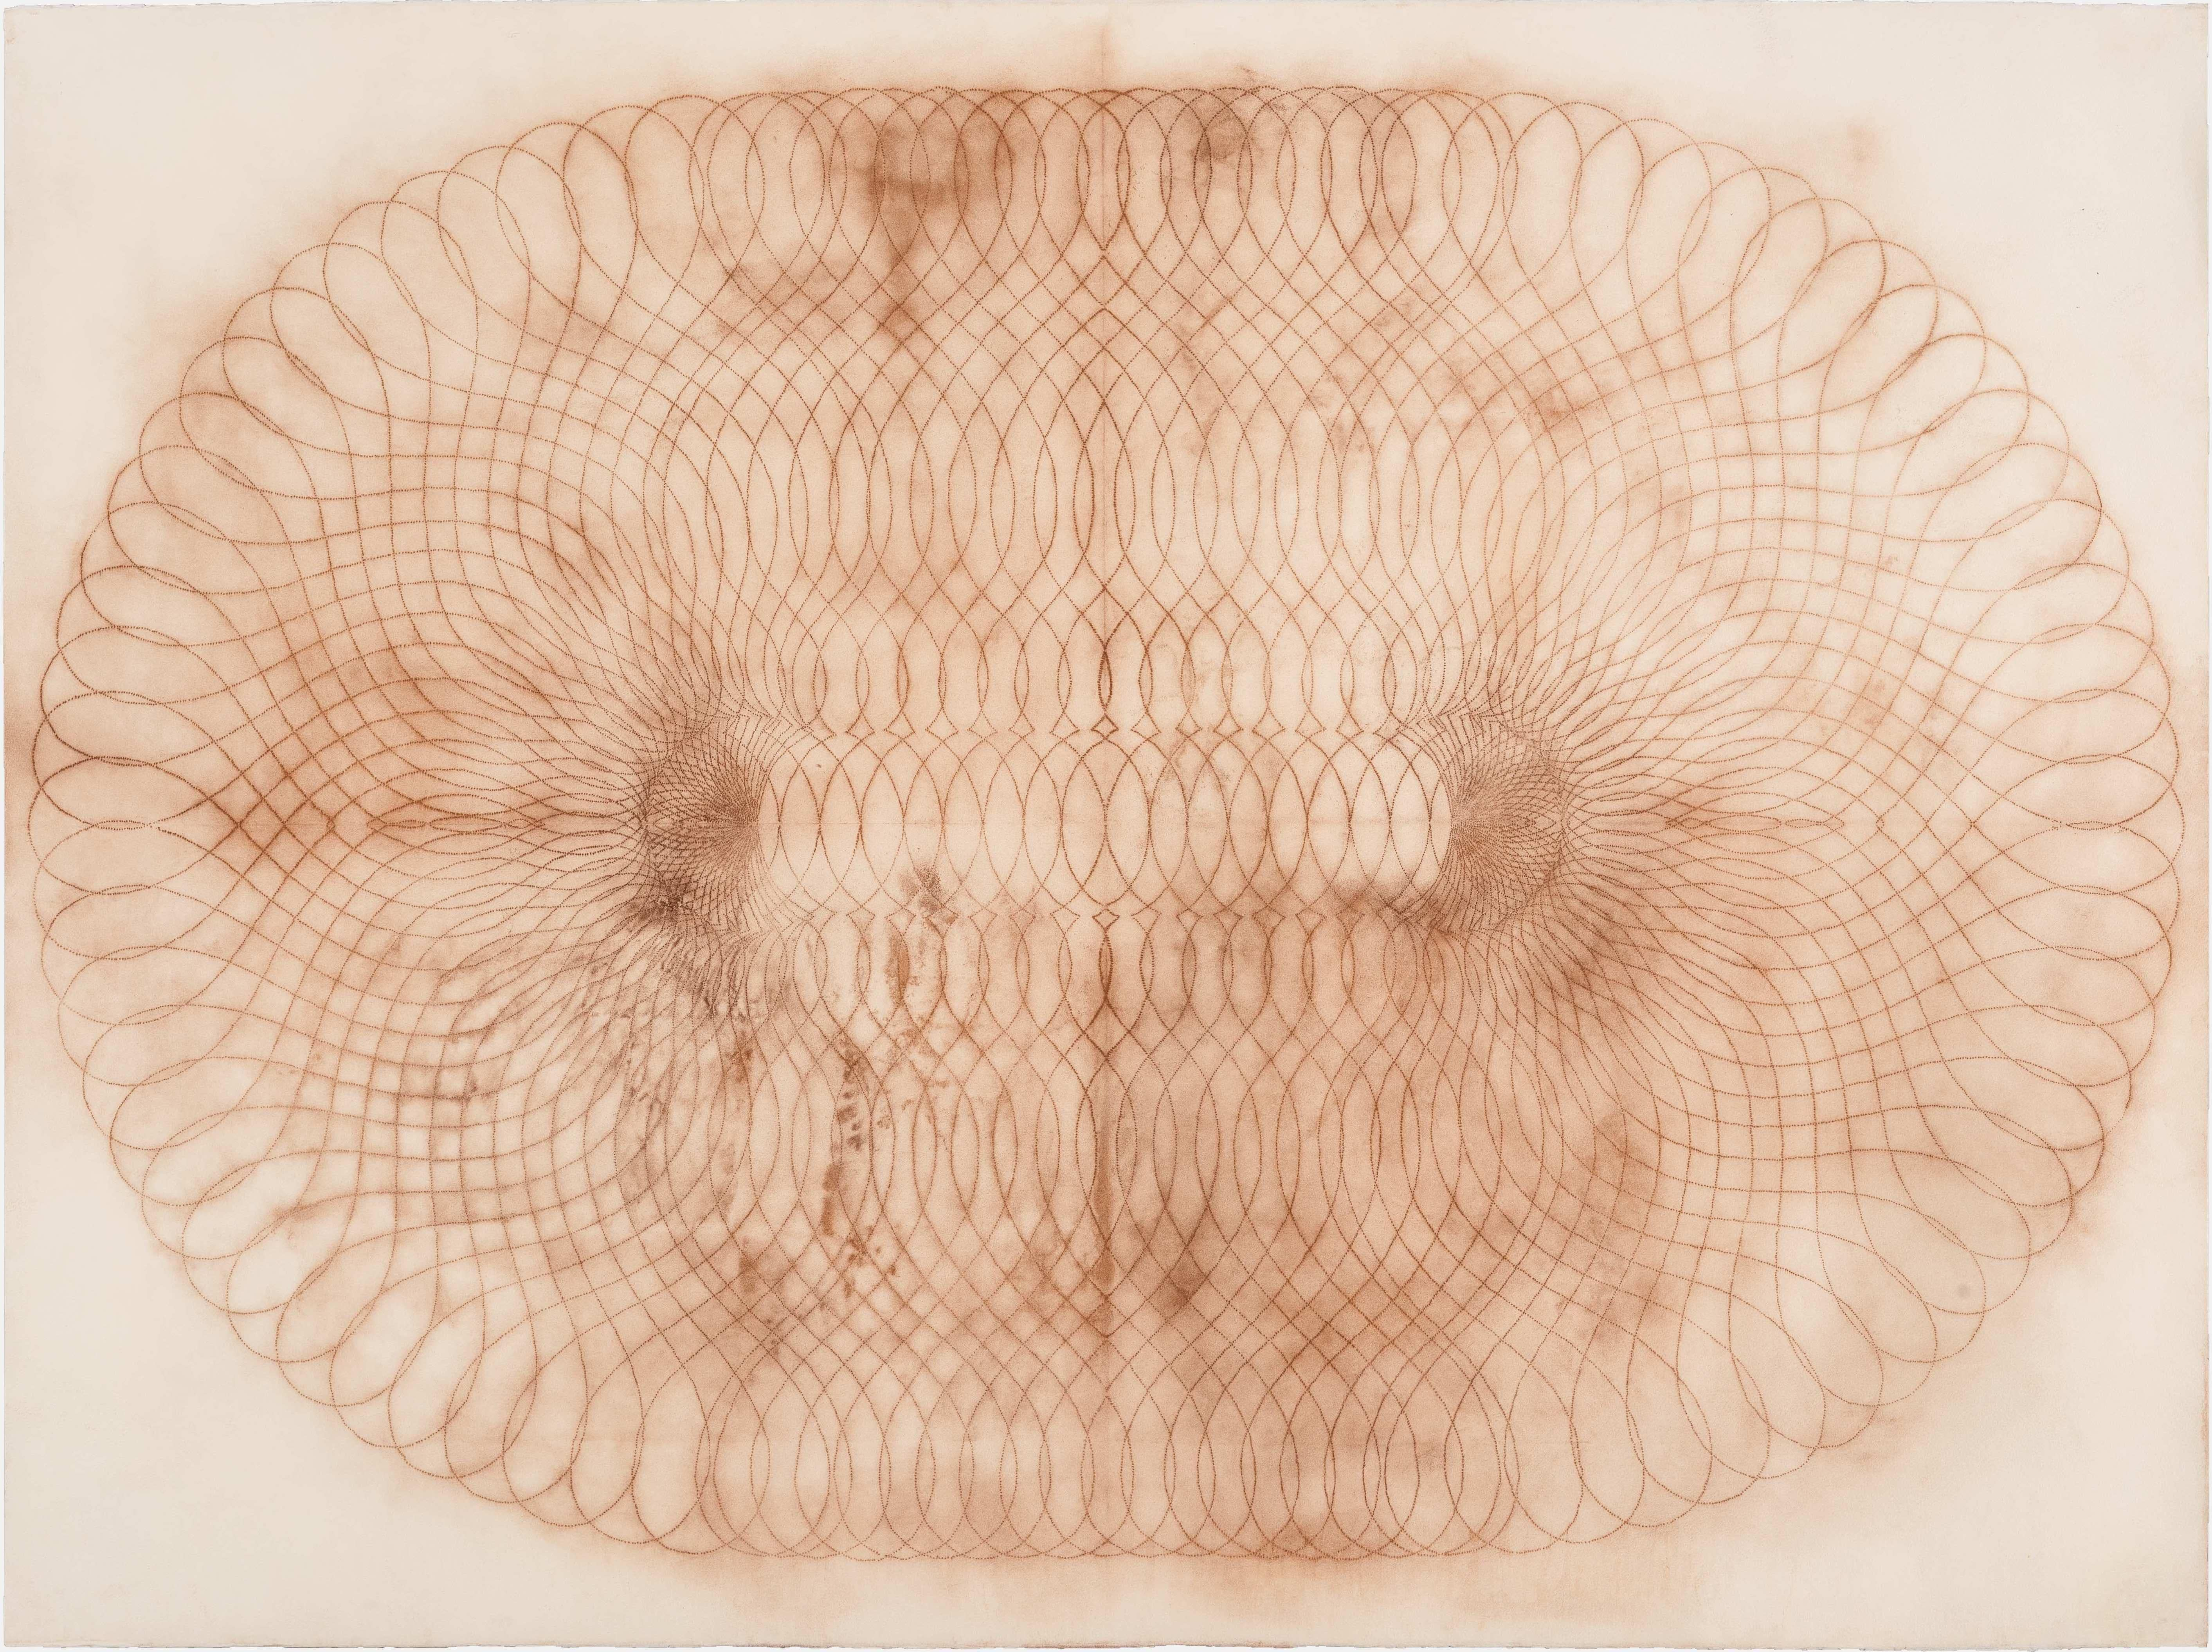 Spiral Form Four A, Geometric Spirograph Drawing in Reddish Brown on Cream Paper